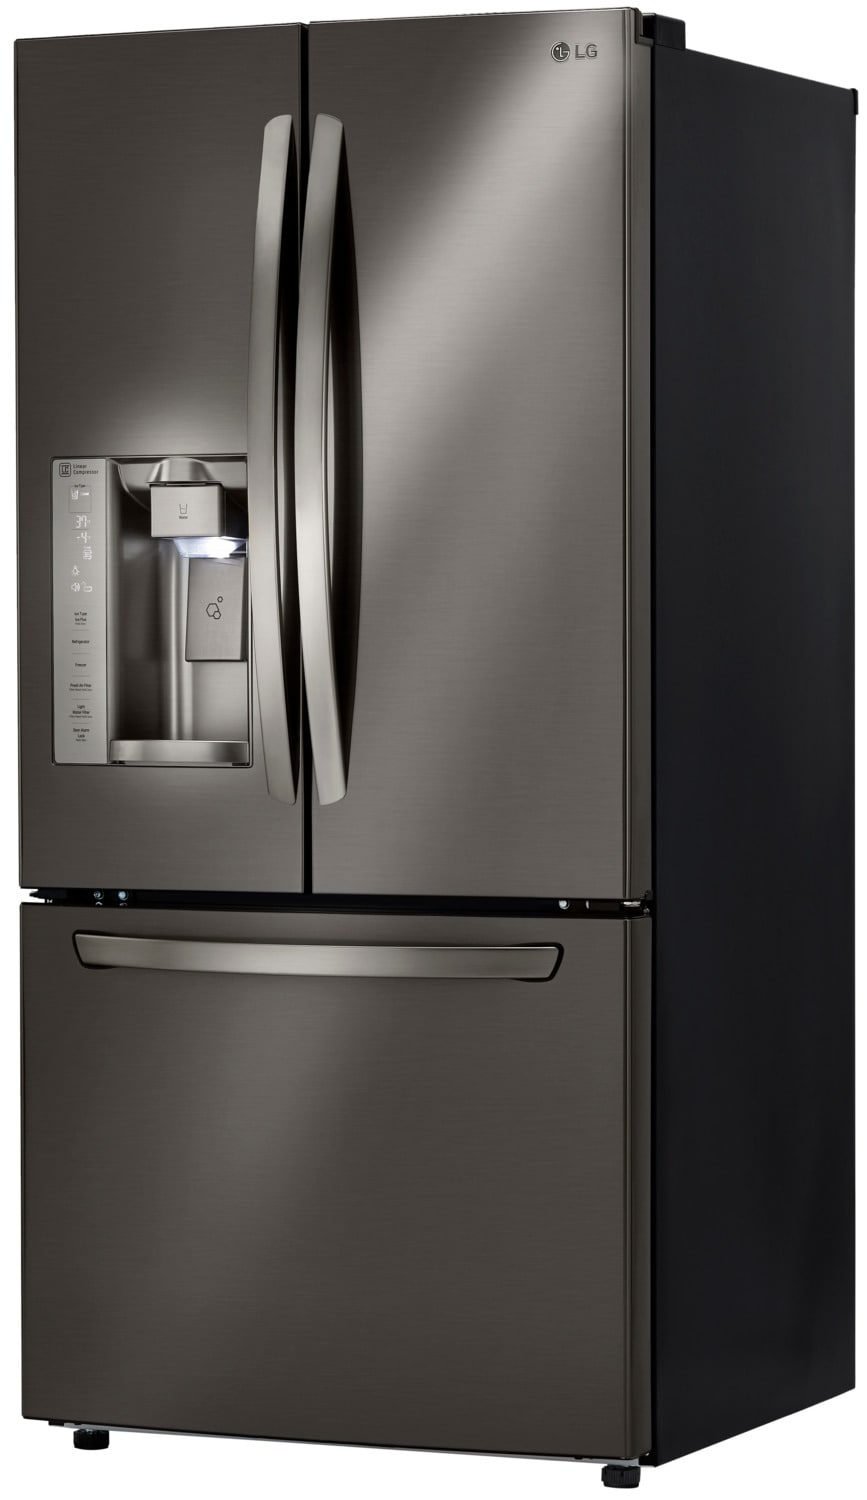 Lg Black Stainless Steel French Door Refrigerator 24 Cu